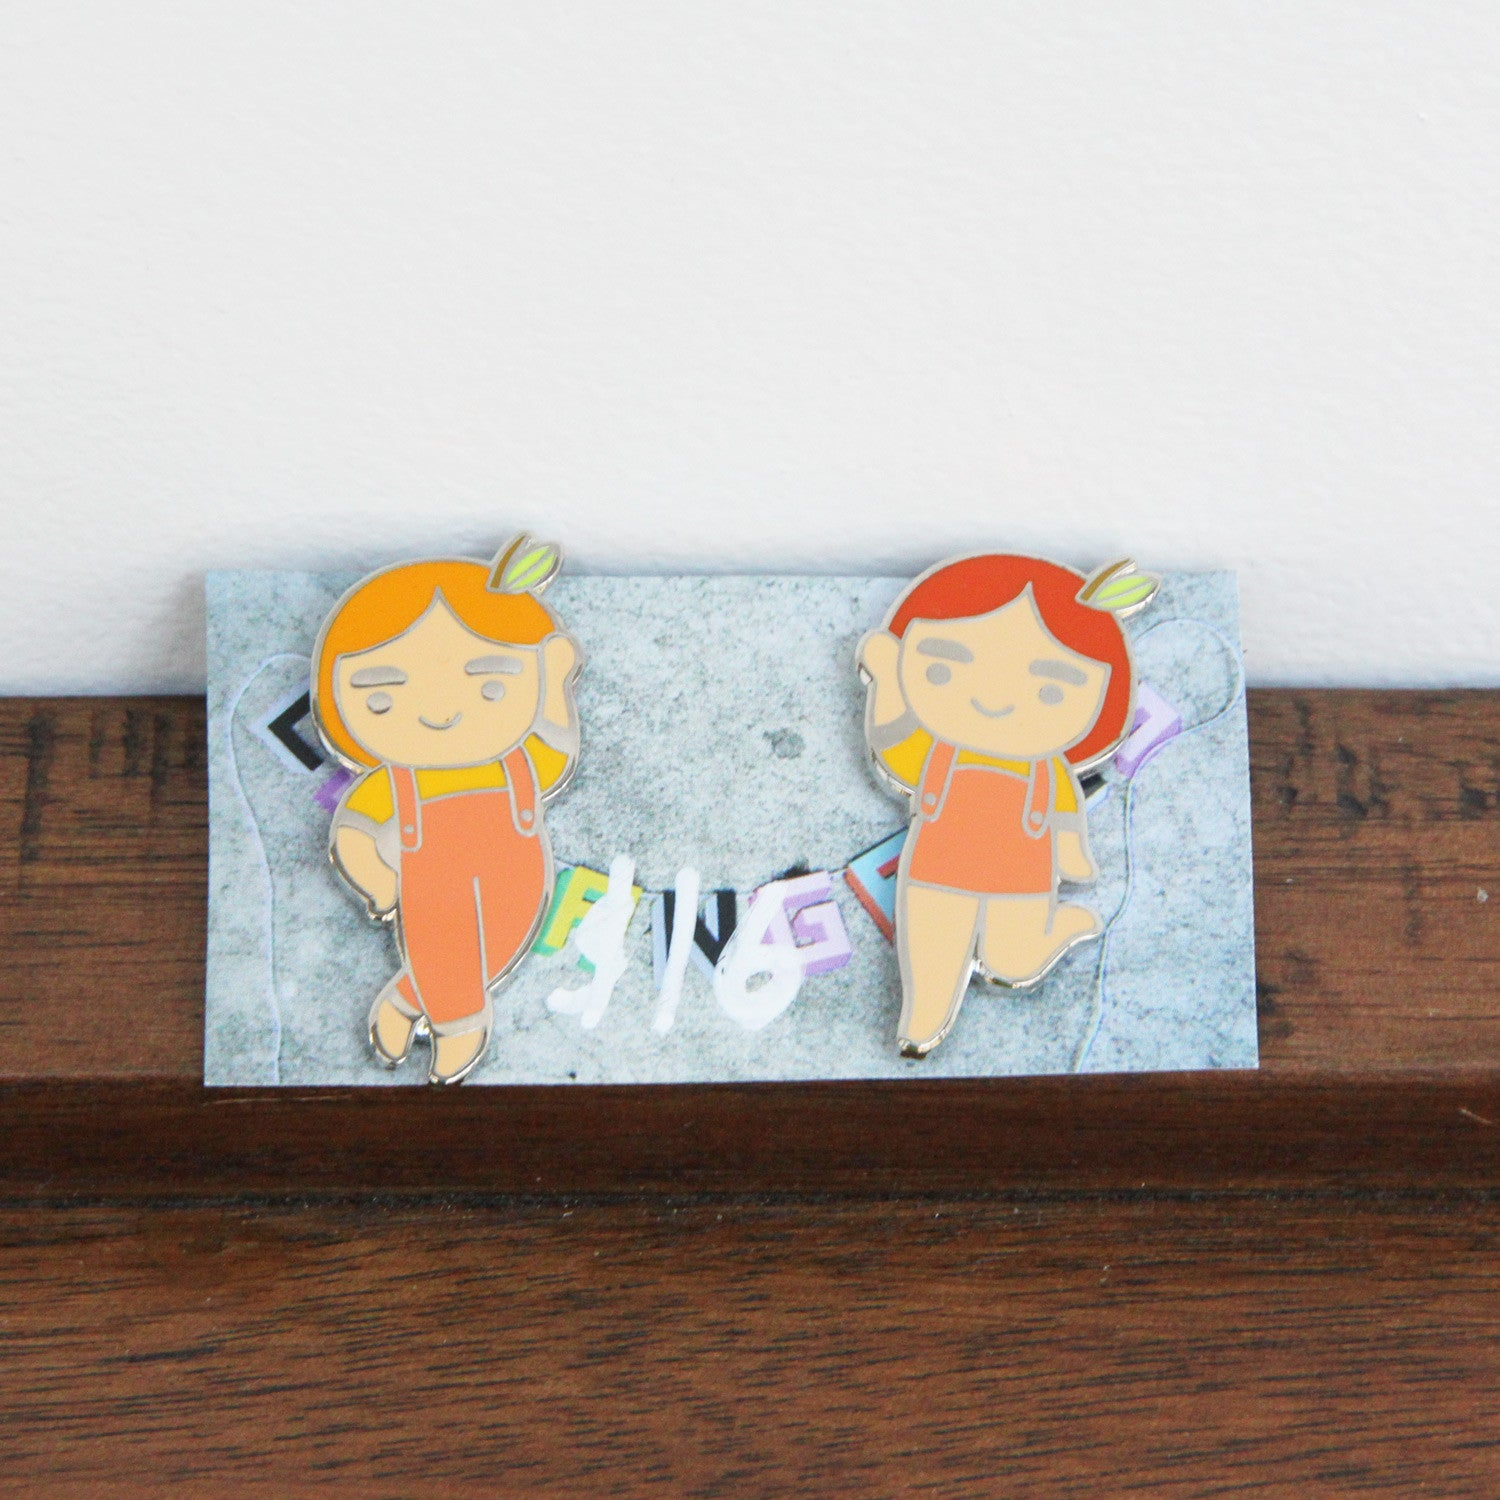 Pair of Peaches | Es Super Fun - Sustain - Gallery and Workspace | Art, Prints, Zines, Workshops | Chicago, IL